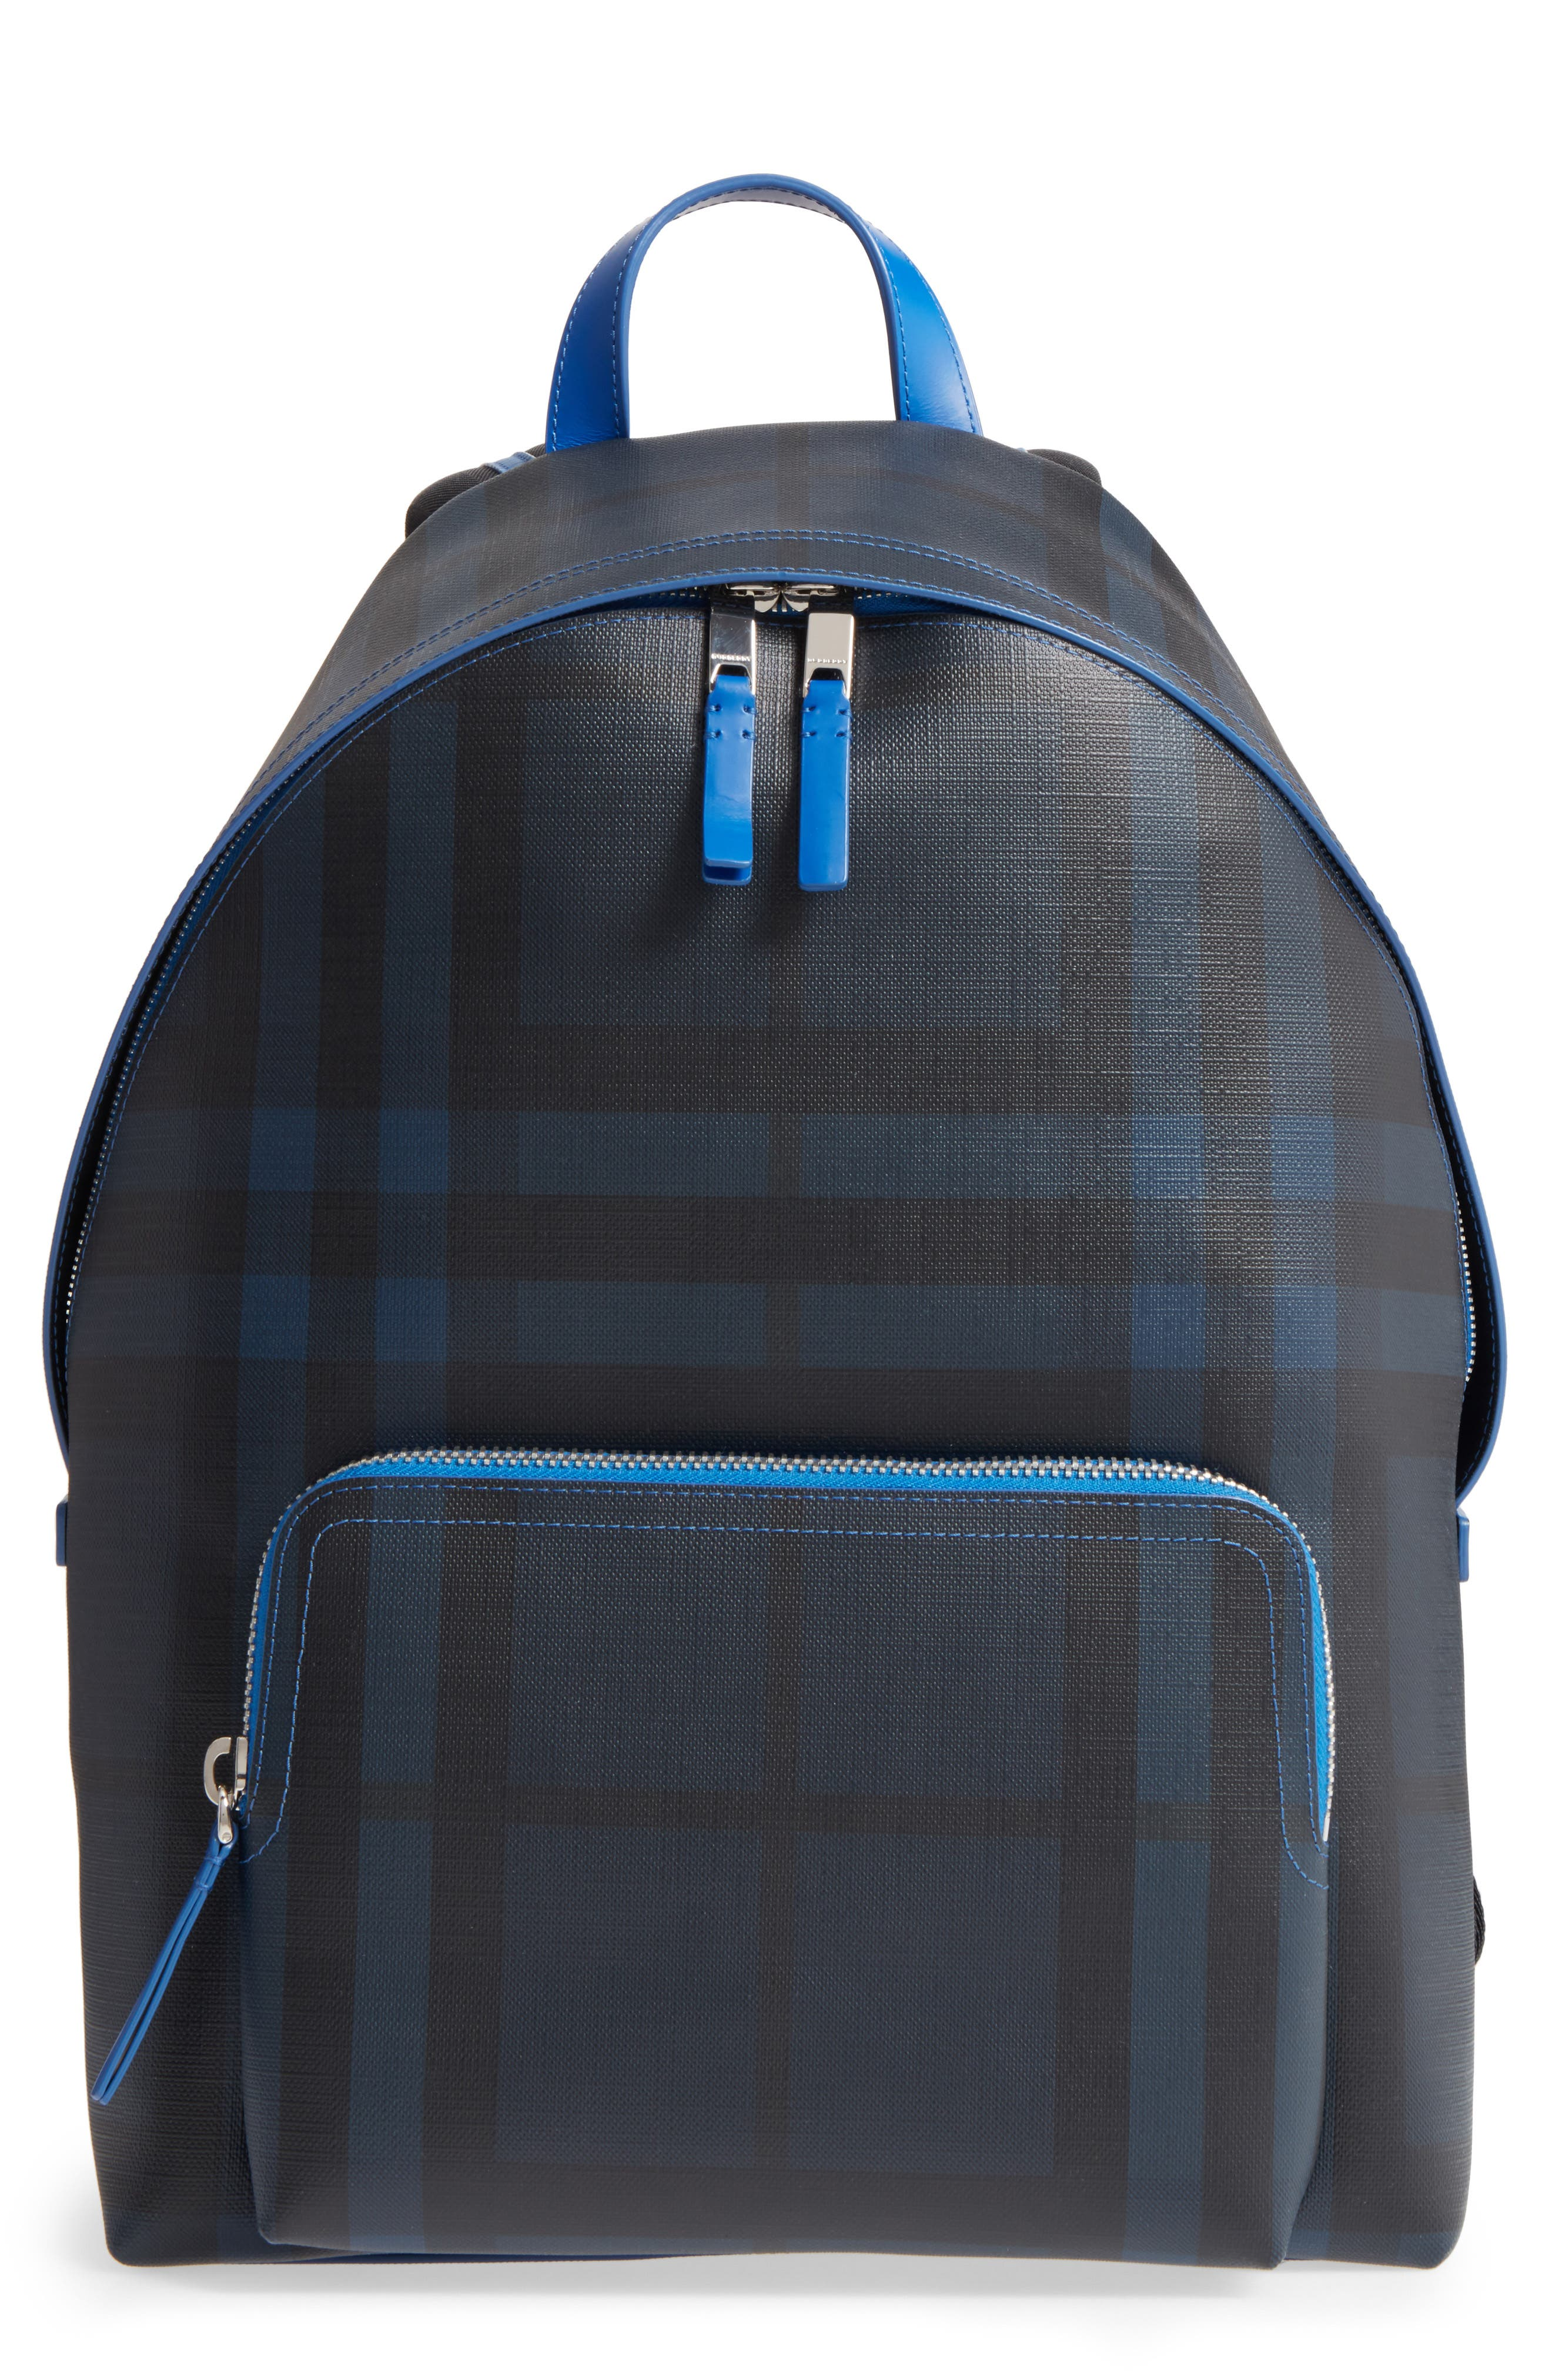 Check Faux Leather Backpack,                             Main thumbnail 1, color,                             Navy/ Blue